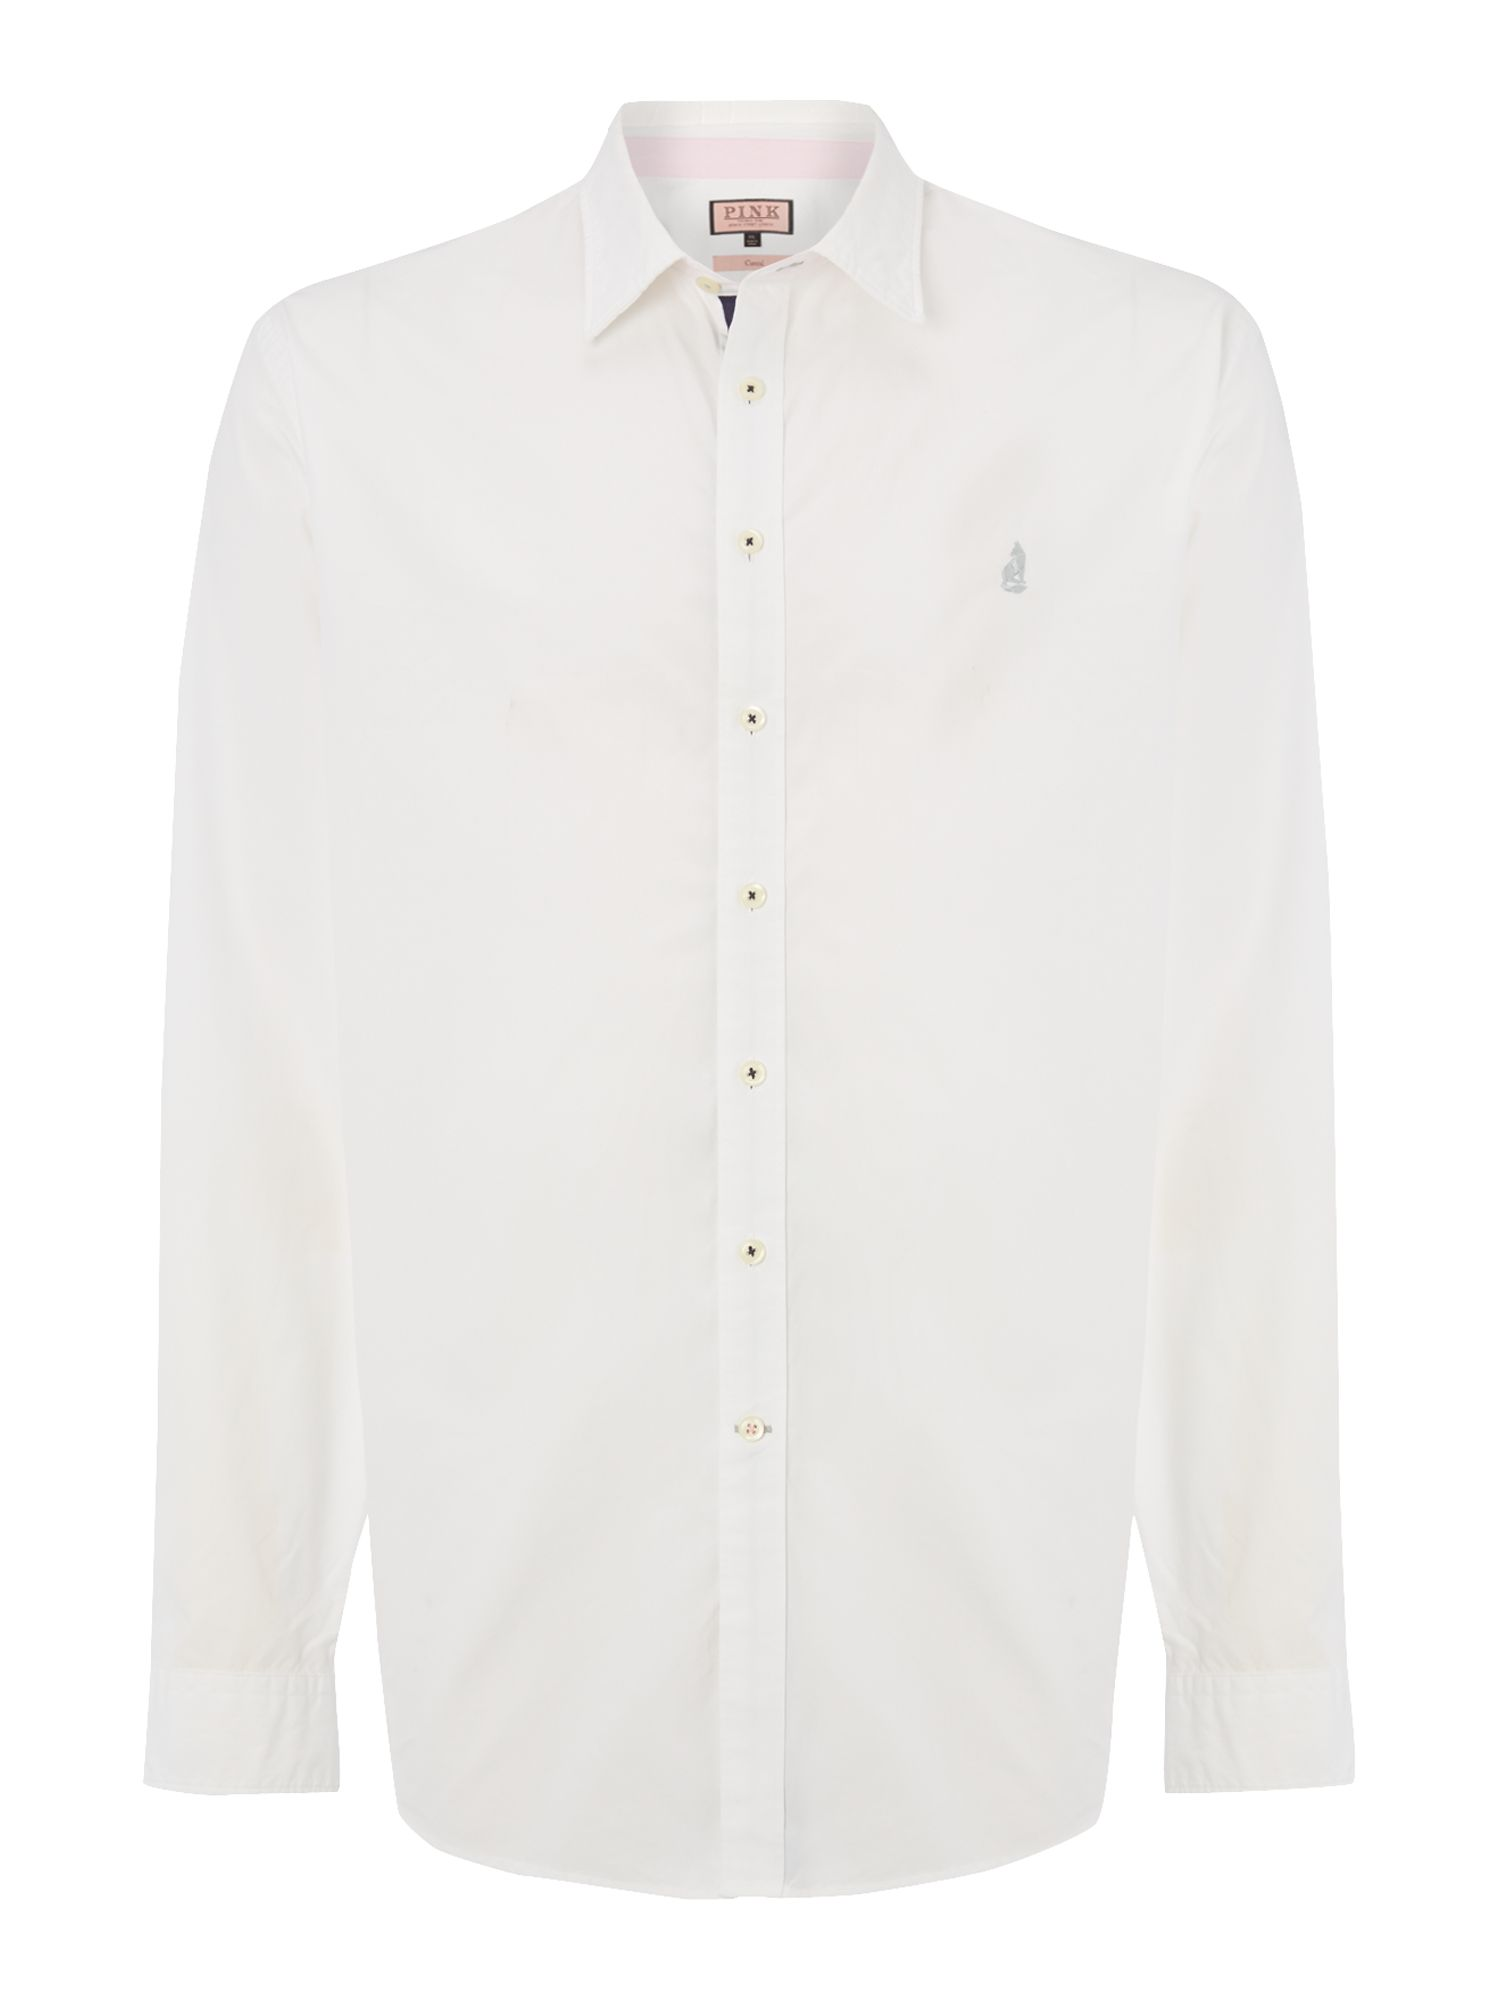 Snell plain long sleeved shirt